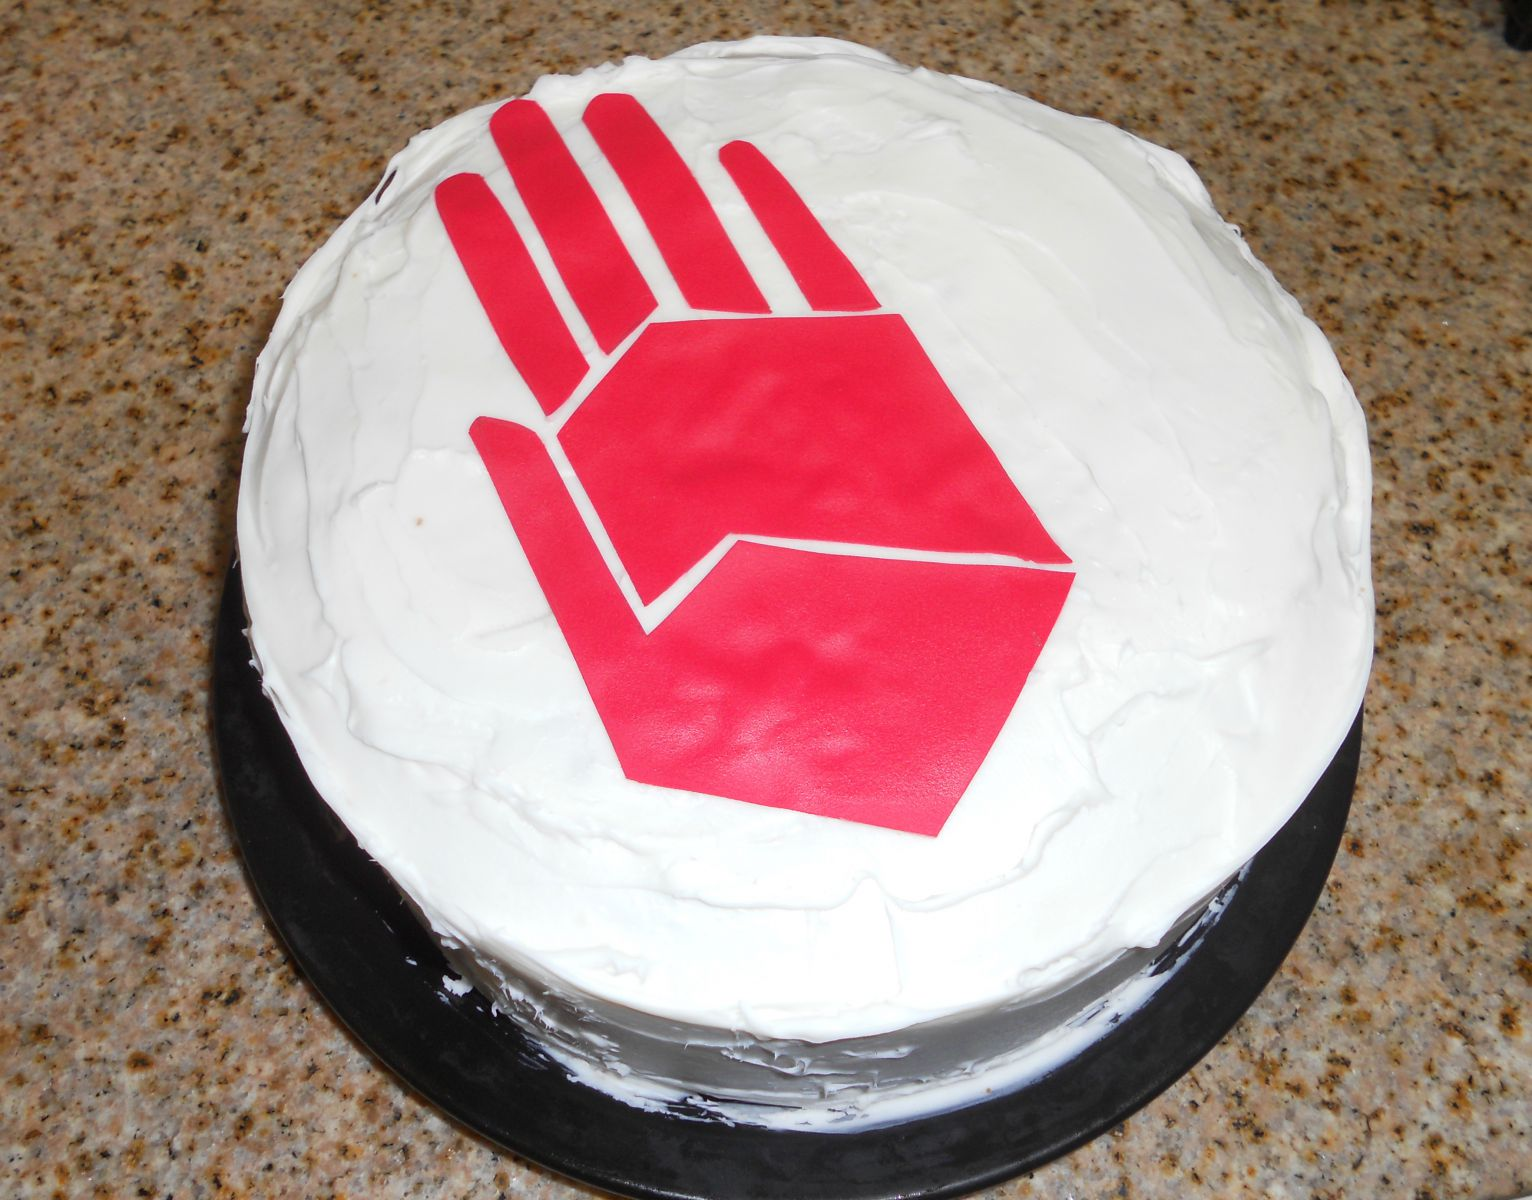 Bans of the Red Hand Cake